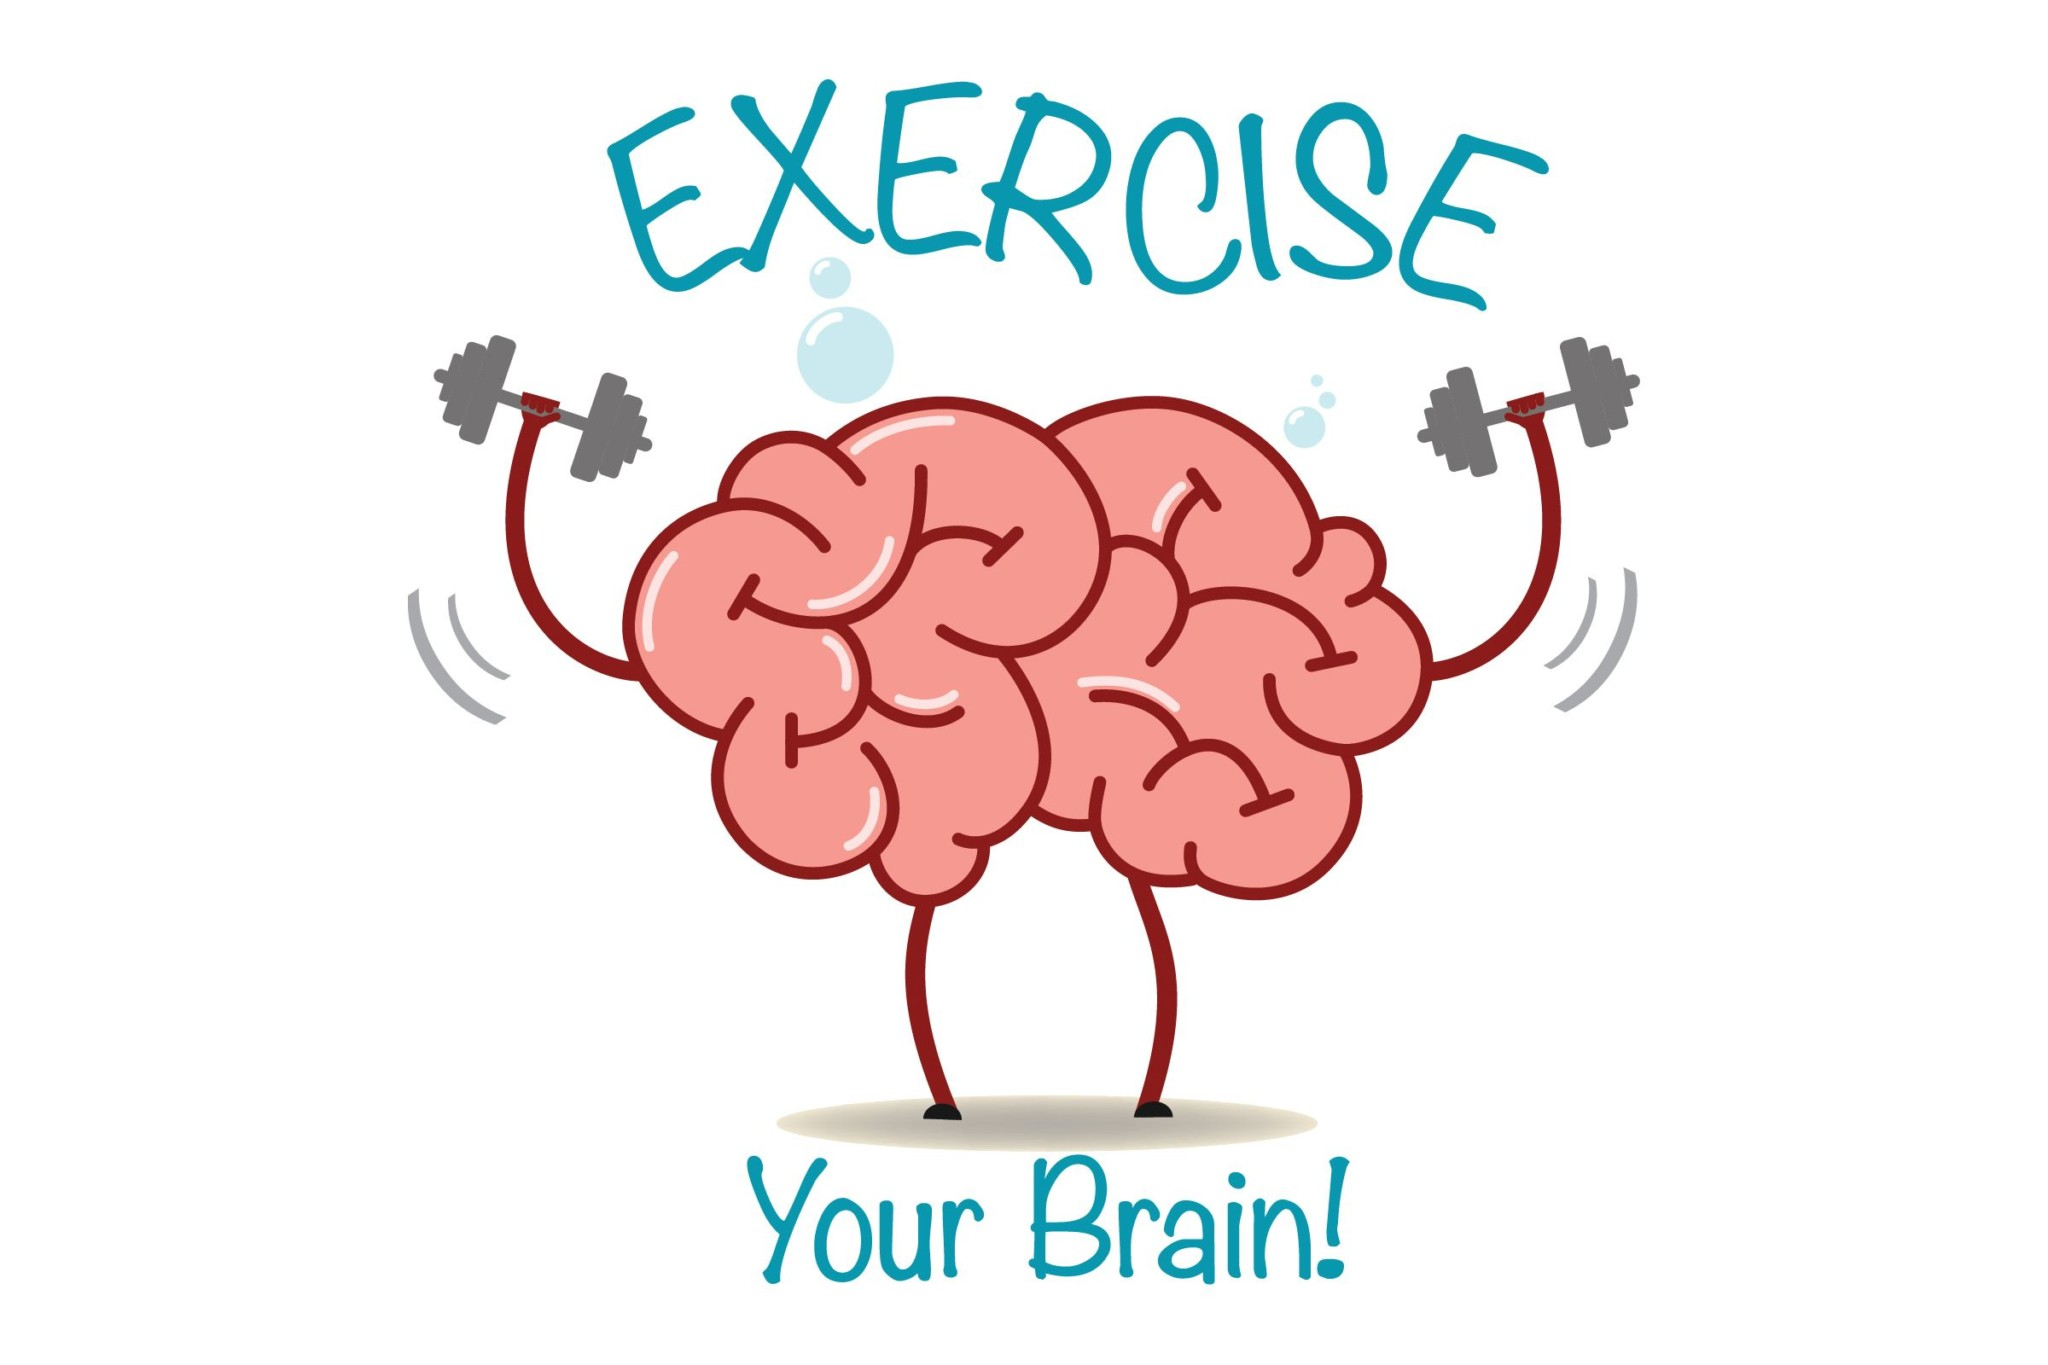 10 Best and Natural Exercises to Help Keep Your Brain As Fit As You Want